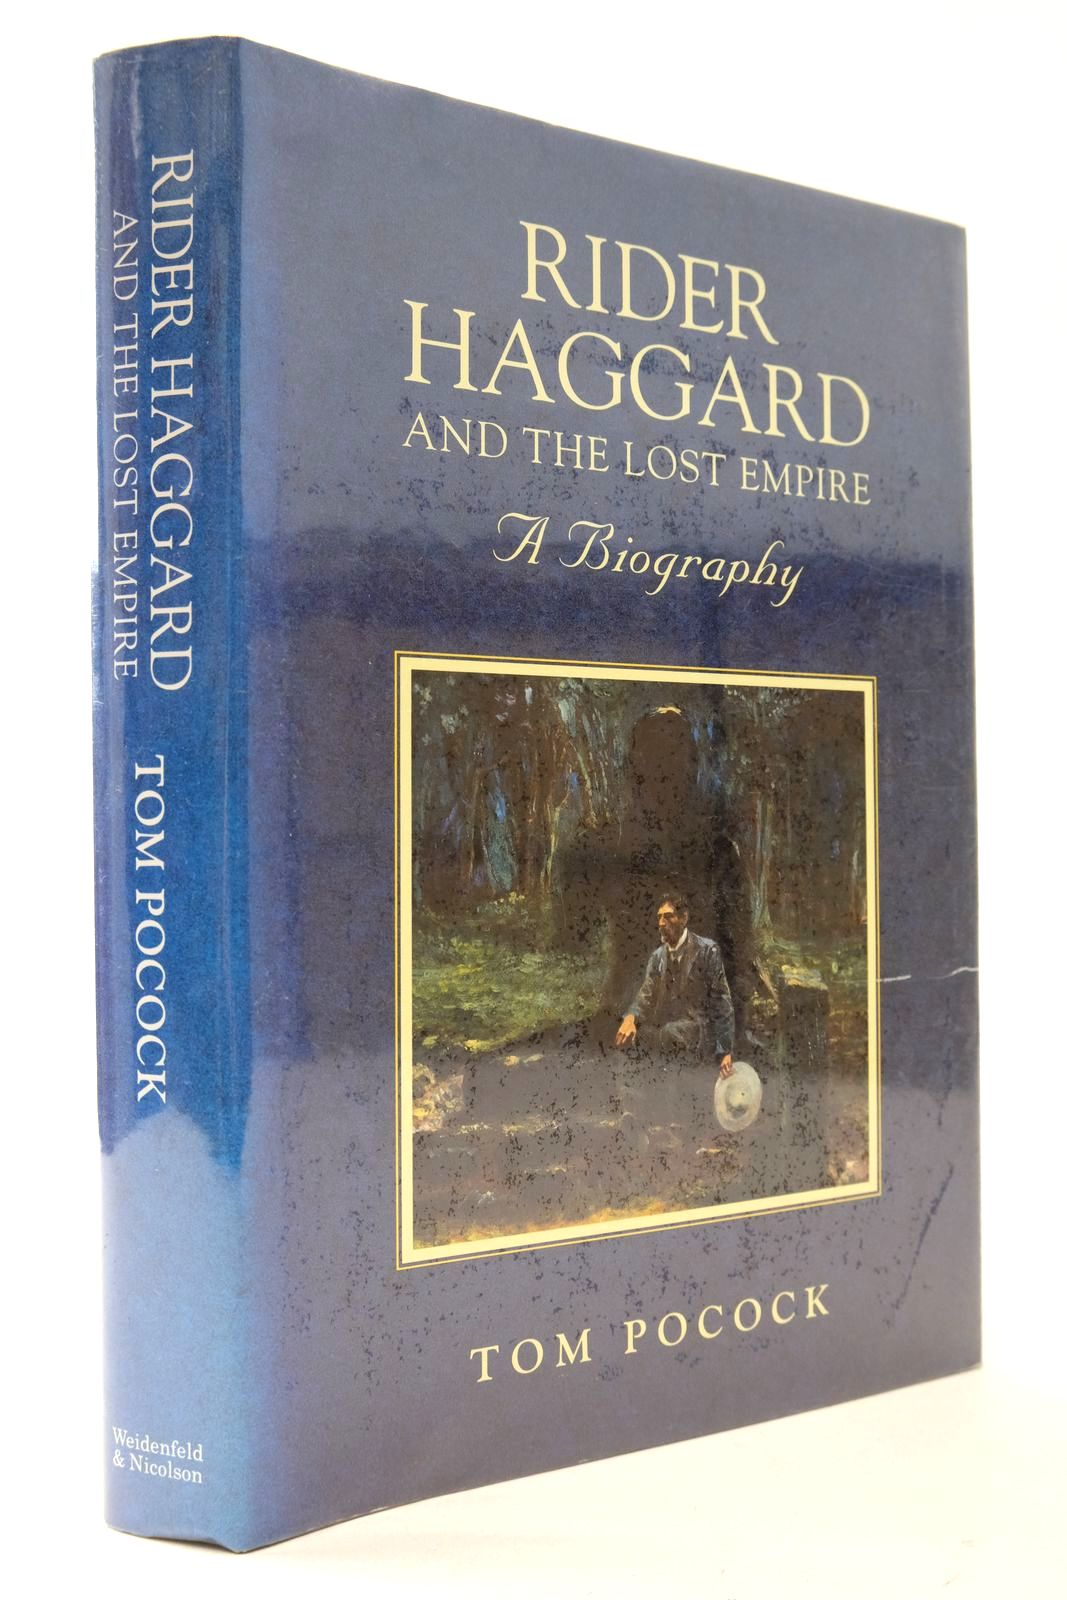 Photo of RIDER HAGGARD AND THE LOST EMPIRE written by Pocock, Tom published by Weidenfeld and Nicolson (STOCK CODE: 2133302)  for sale by Stella & Rose's Books